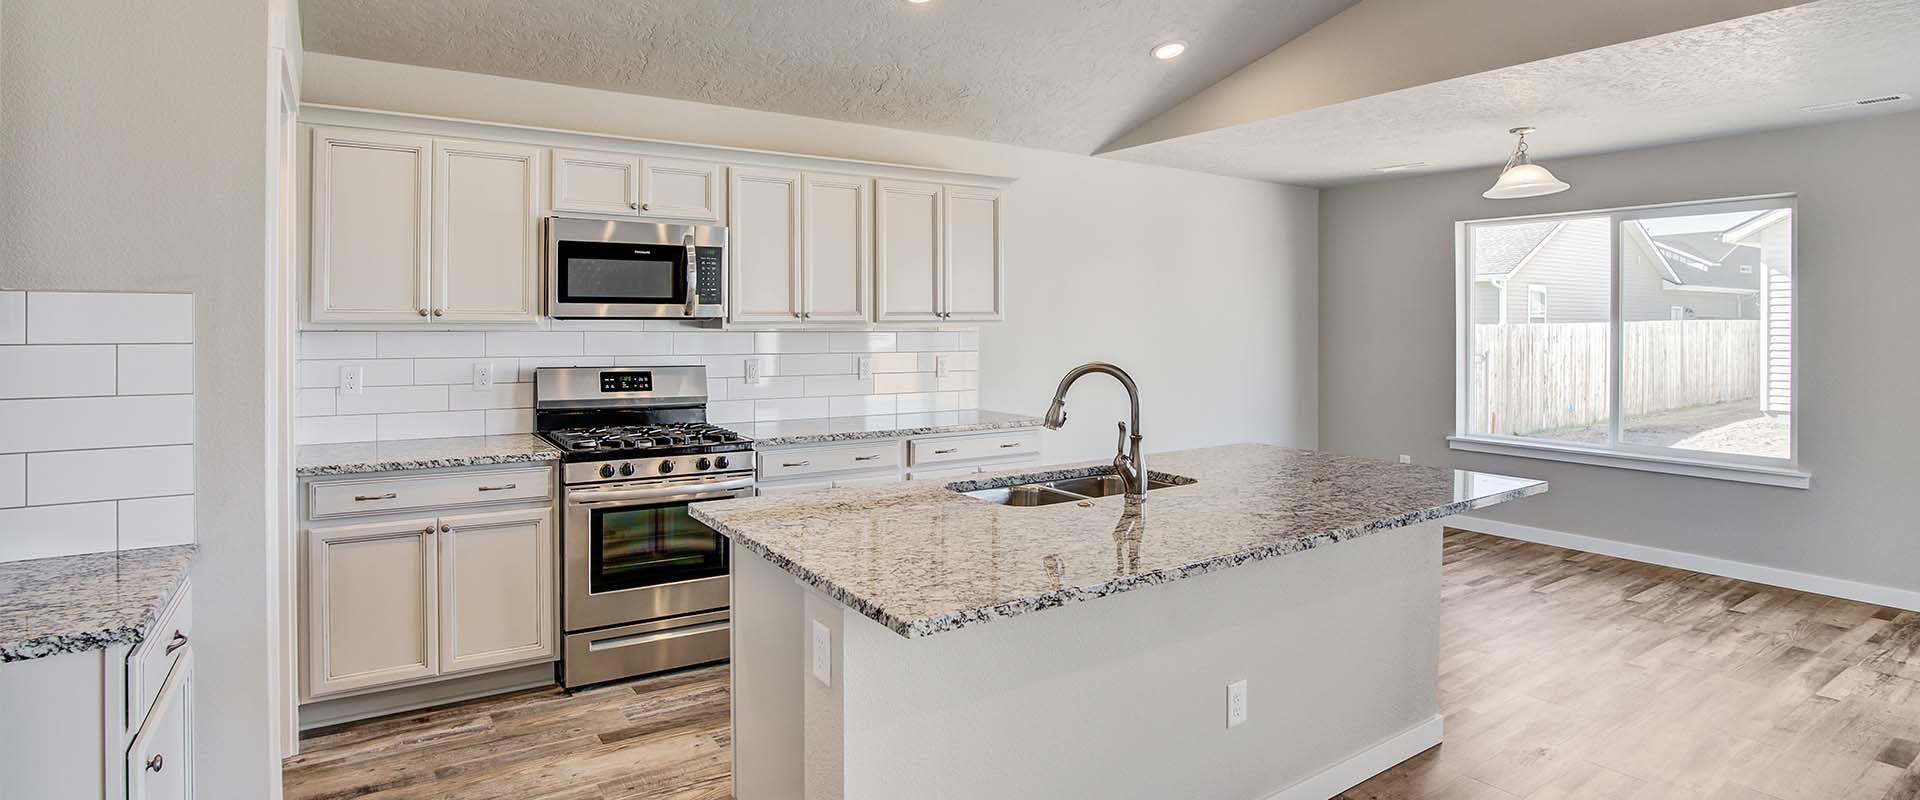 Sapphire-kitchen2-new-homes-boise-idaho-hubble-homes.jpg